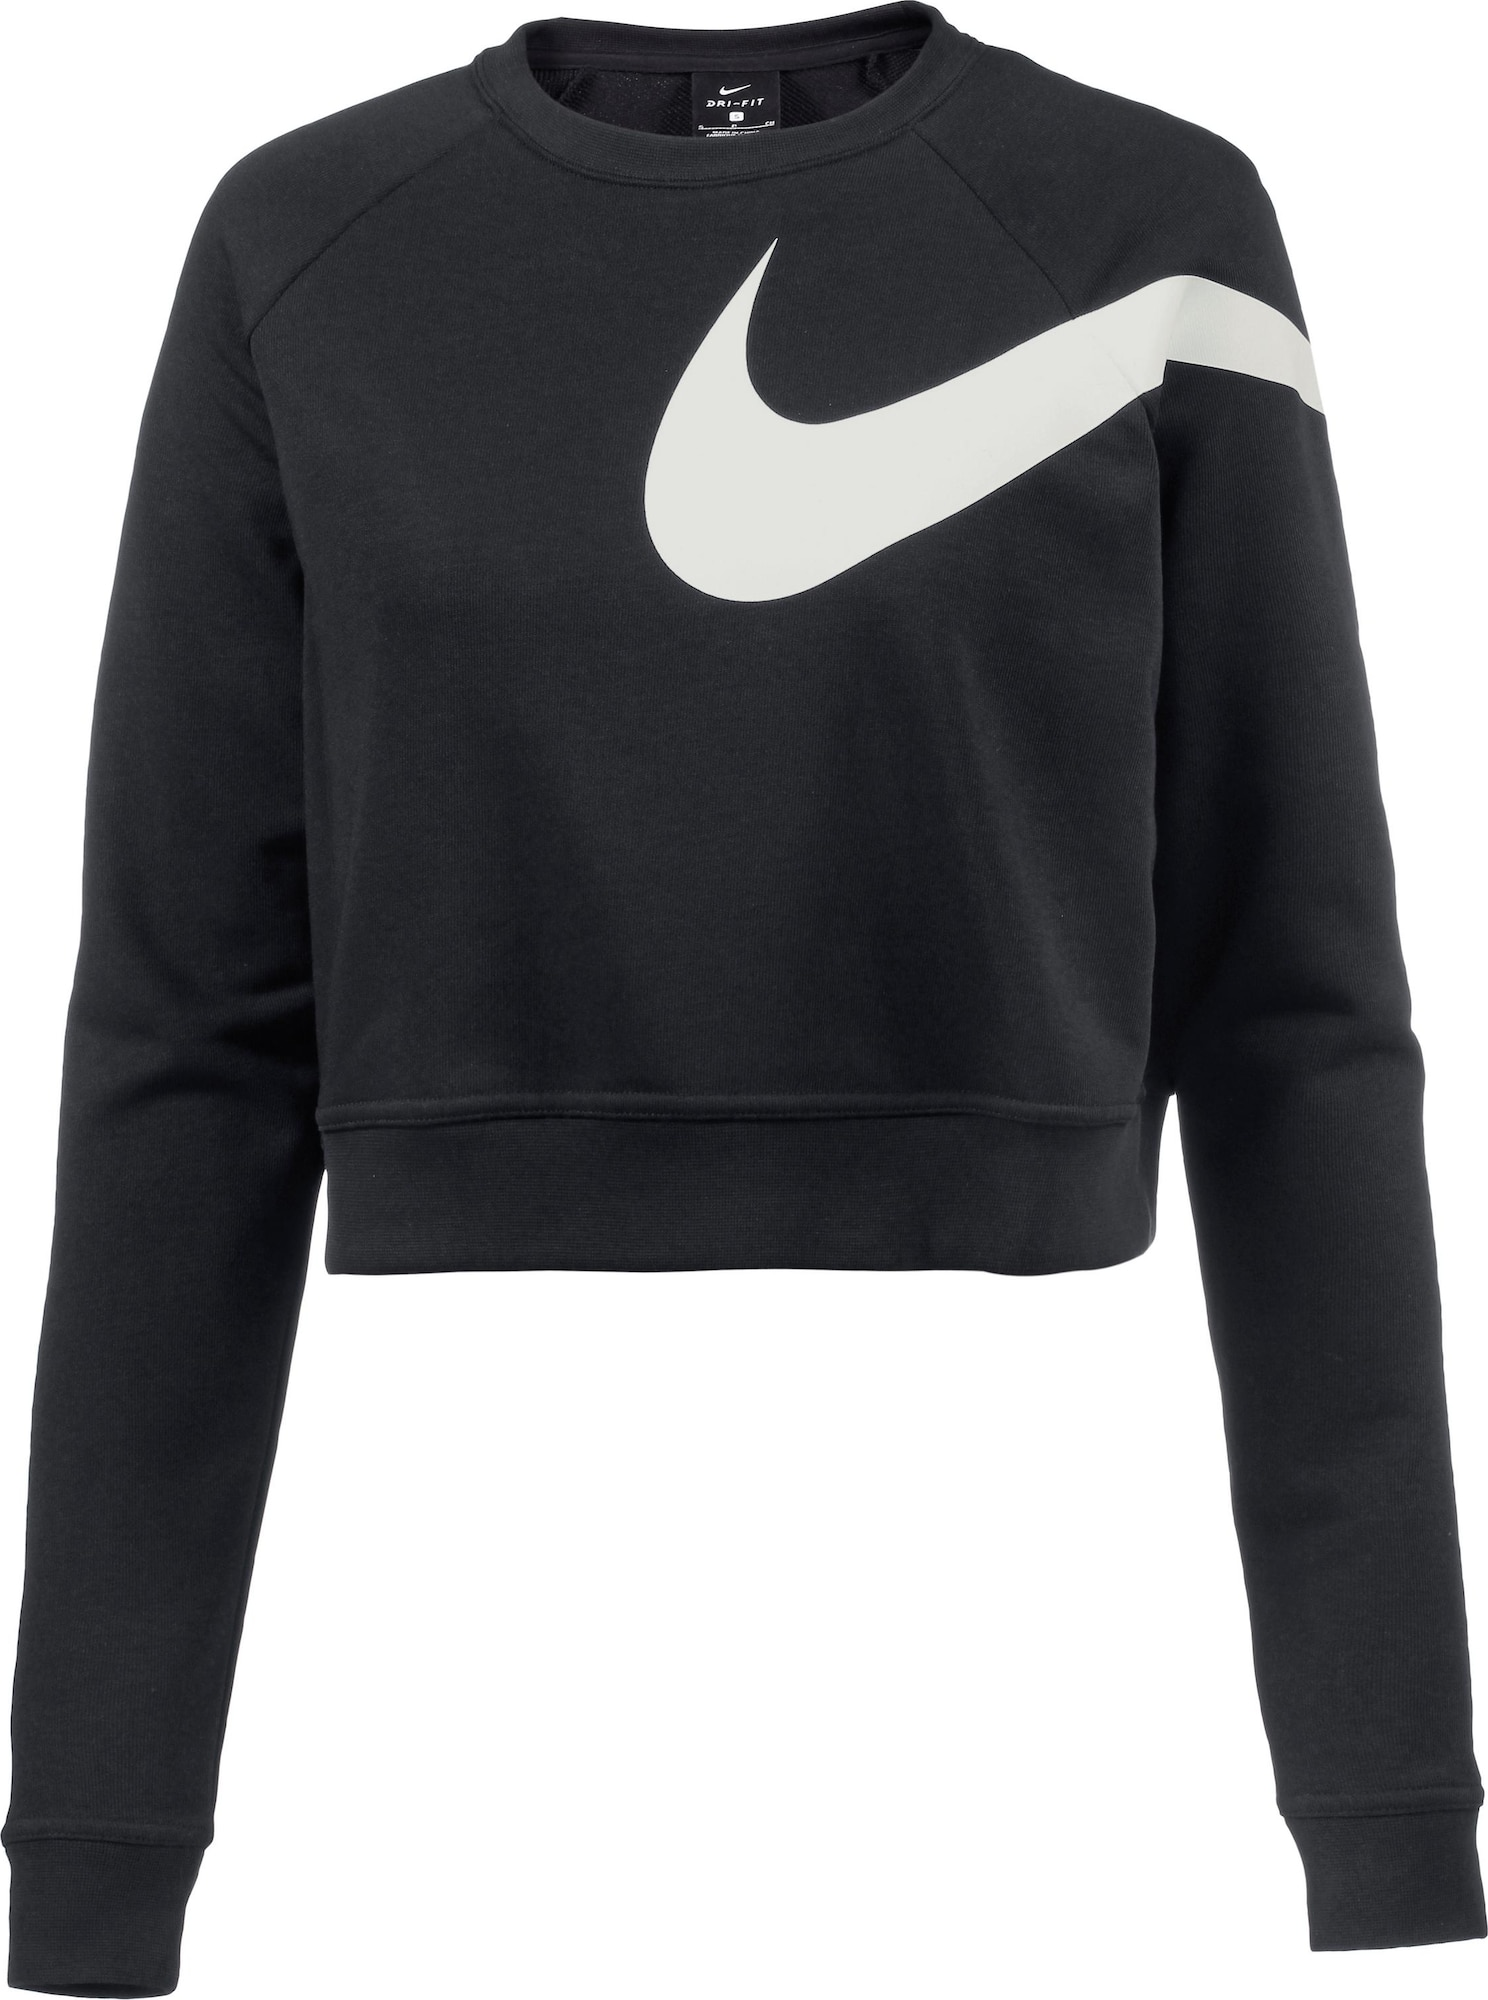 nike sweatshirt damen in schwarz. Black Bedroom Furniture Sets. Home Design Ideas